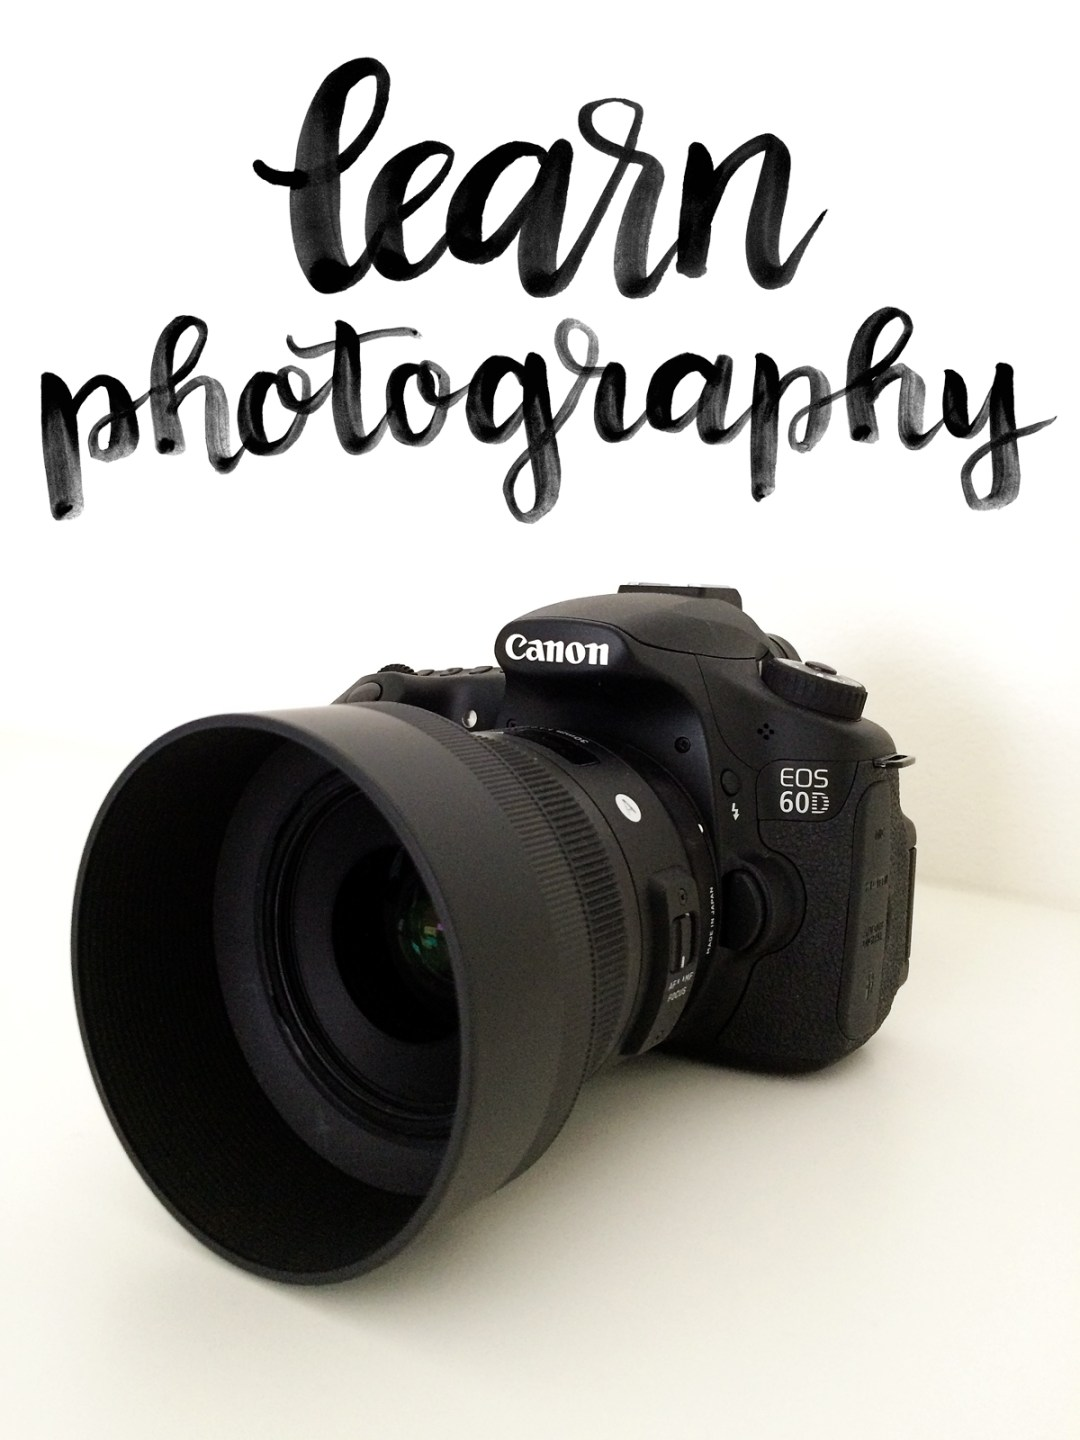 Resources for Learning Photography - www.randomolive.com